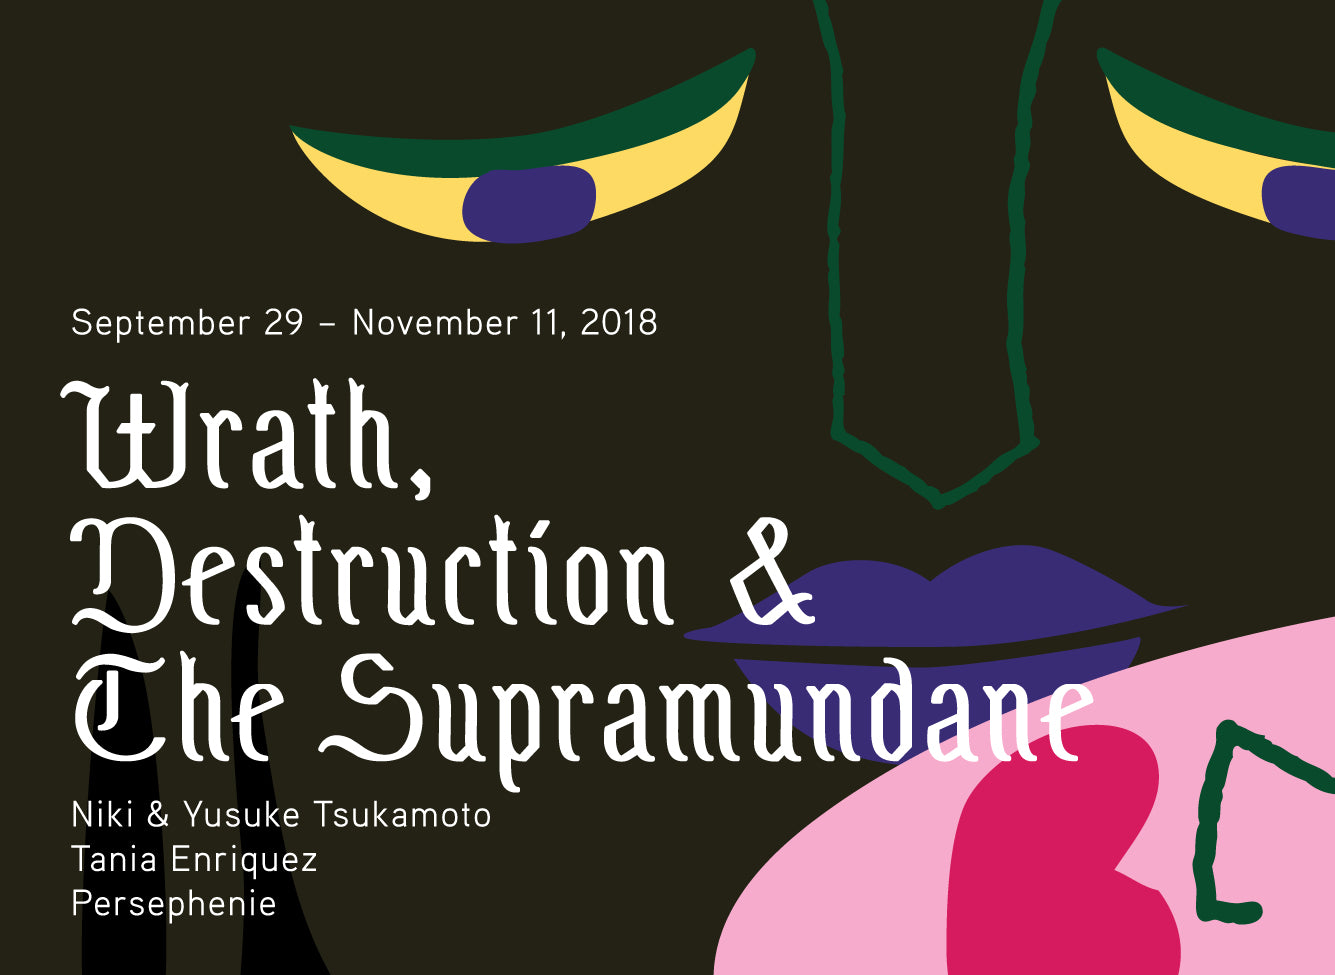 Wrath, Destruction, & The Supramundane | Niki & Yusuke Tsukamoto, Tania Enriquez, Persephenie